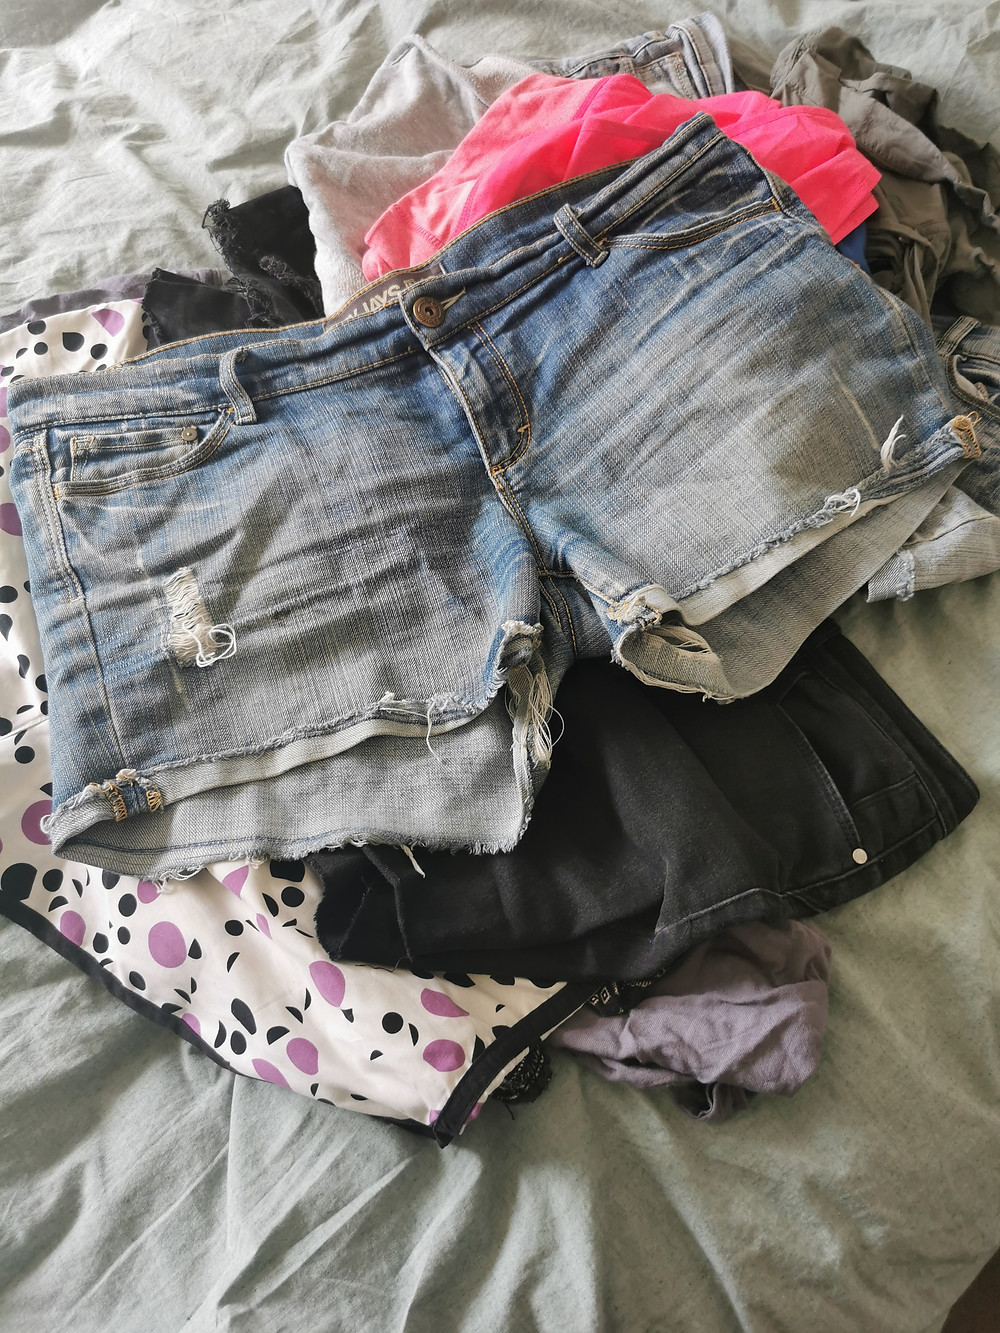 A pile of shorts